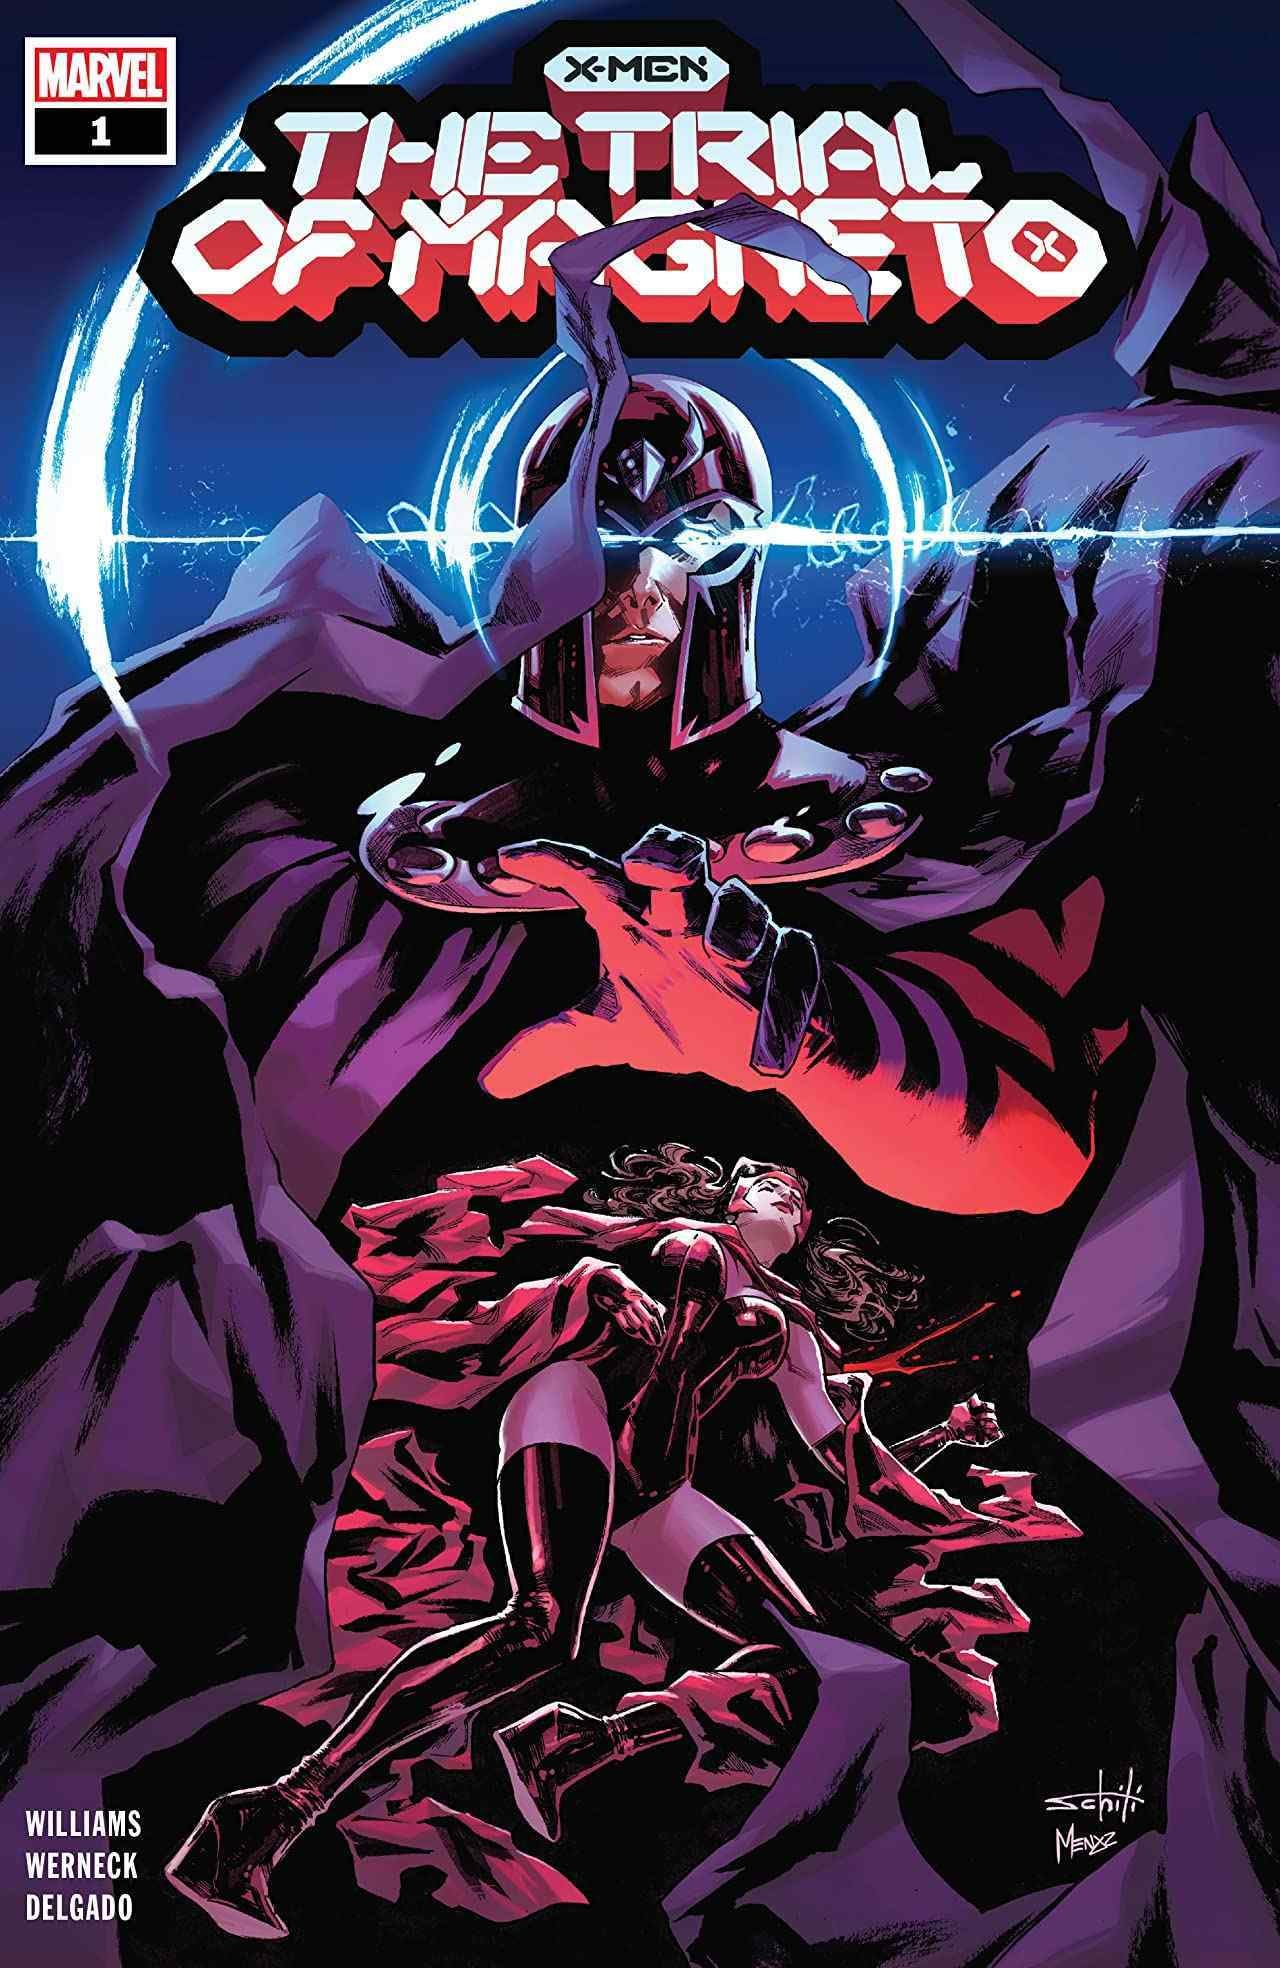 X-Men The Trial of Magneto #1